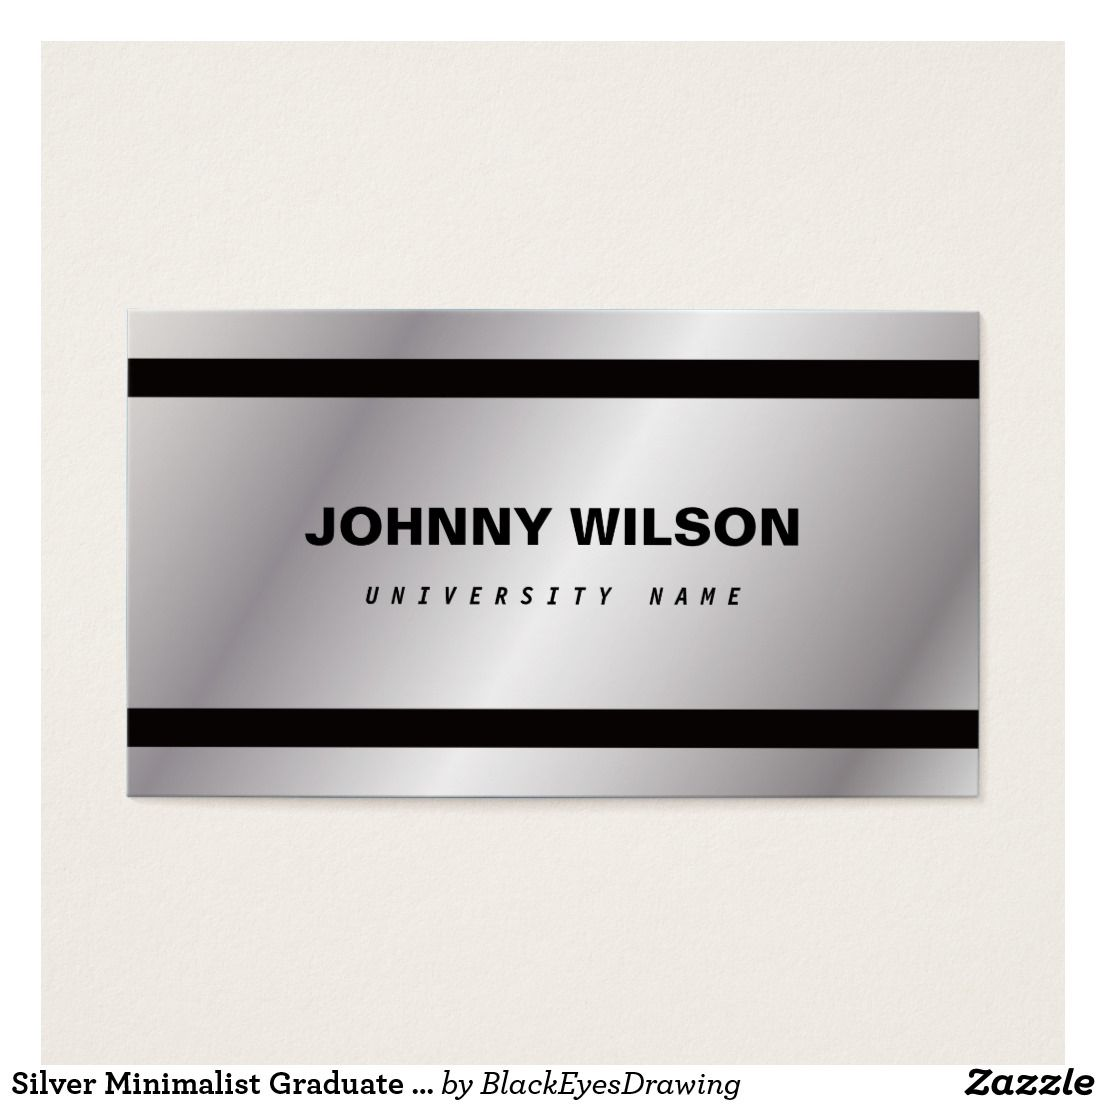 Silver Minimalist Graduate Student Business Card | Business Cards ...